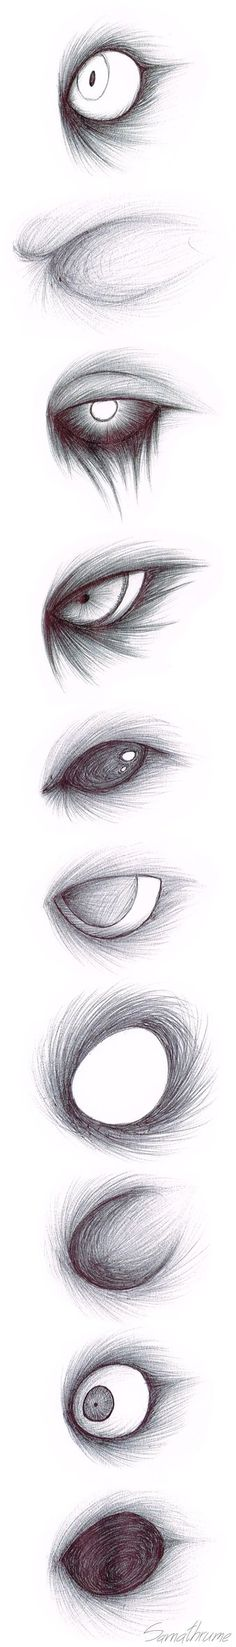 Creepypasta Eye Sketches by Samathrume on DeviantArt